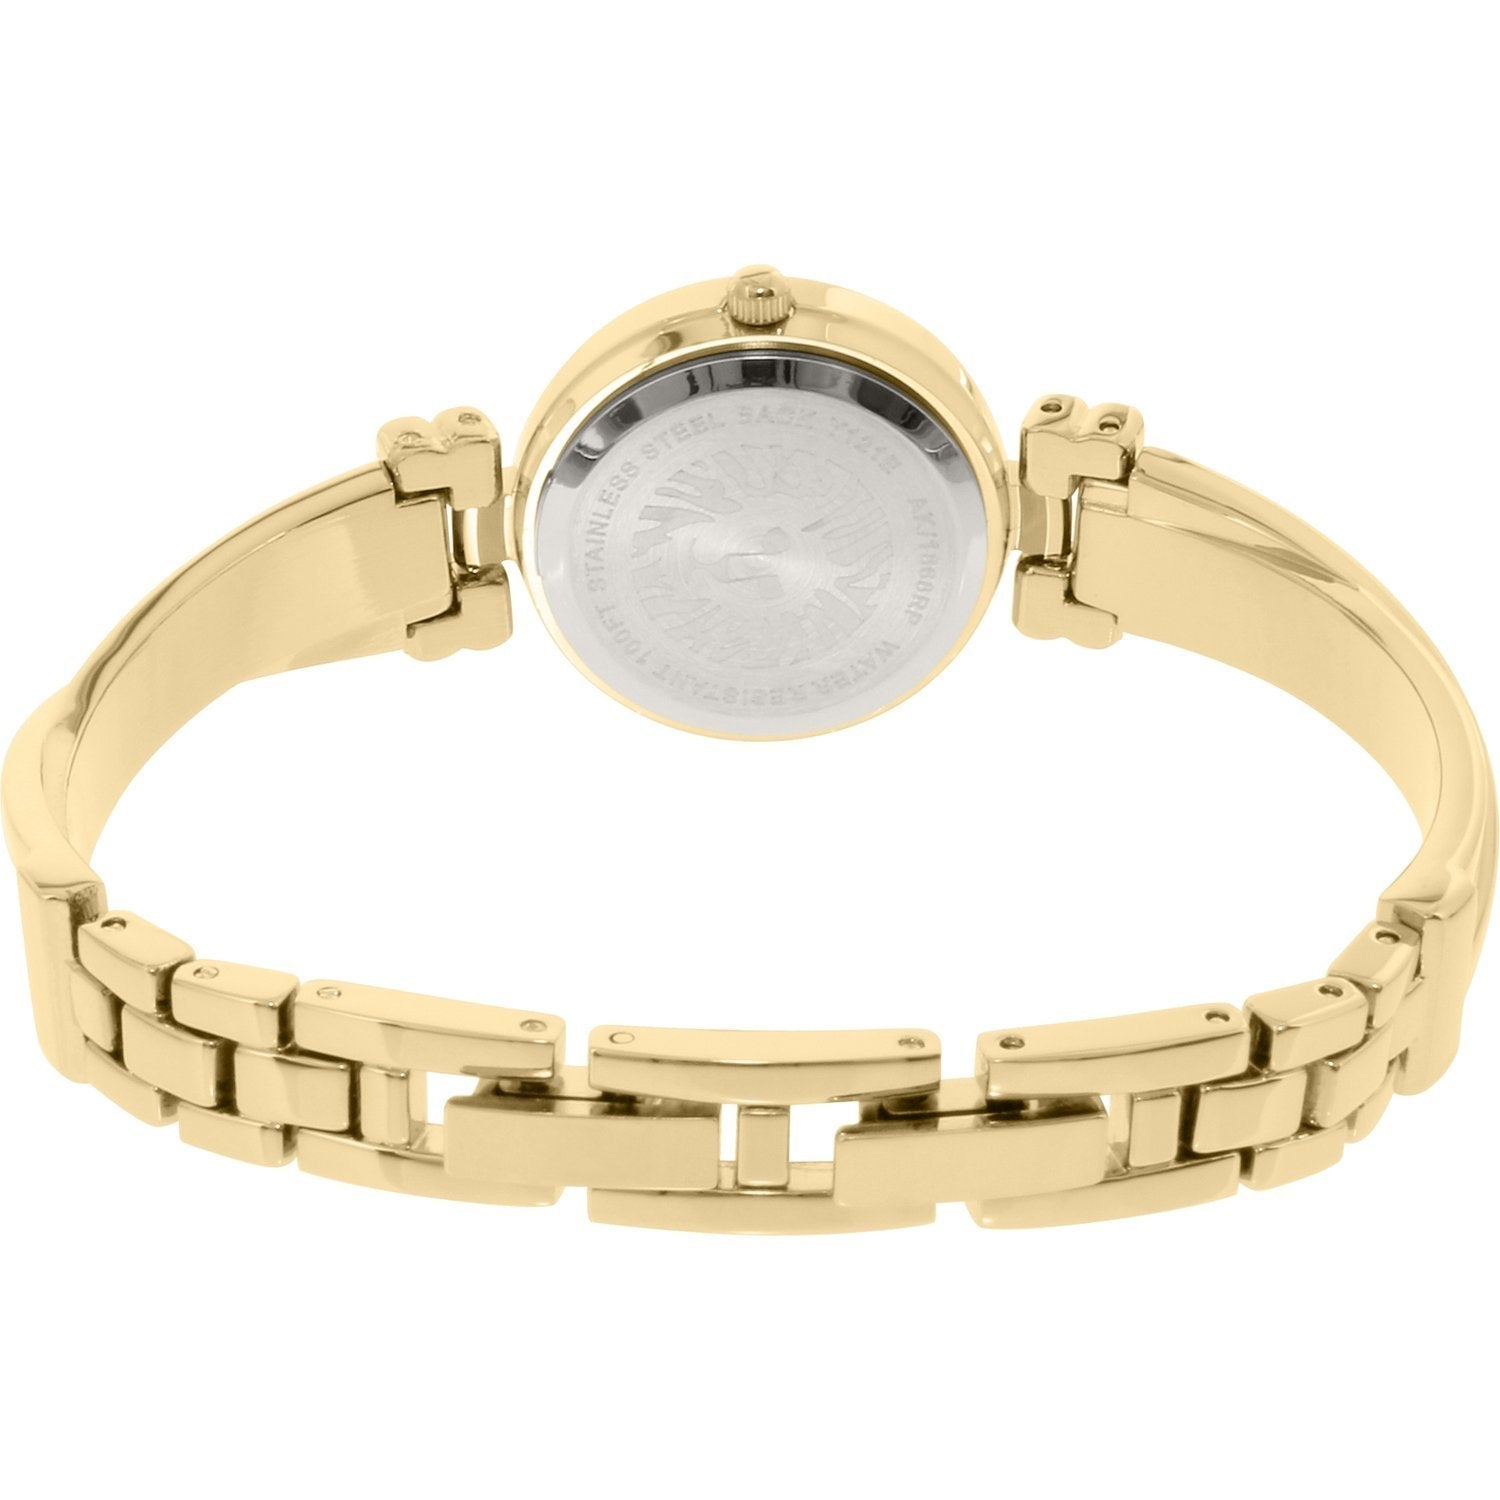 Anne Klein AK-1868GBST Gold-Tone Bangle and Bracelet Set Watch for Women - Watchportal Philippines